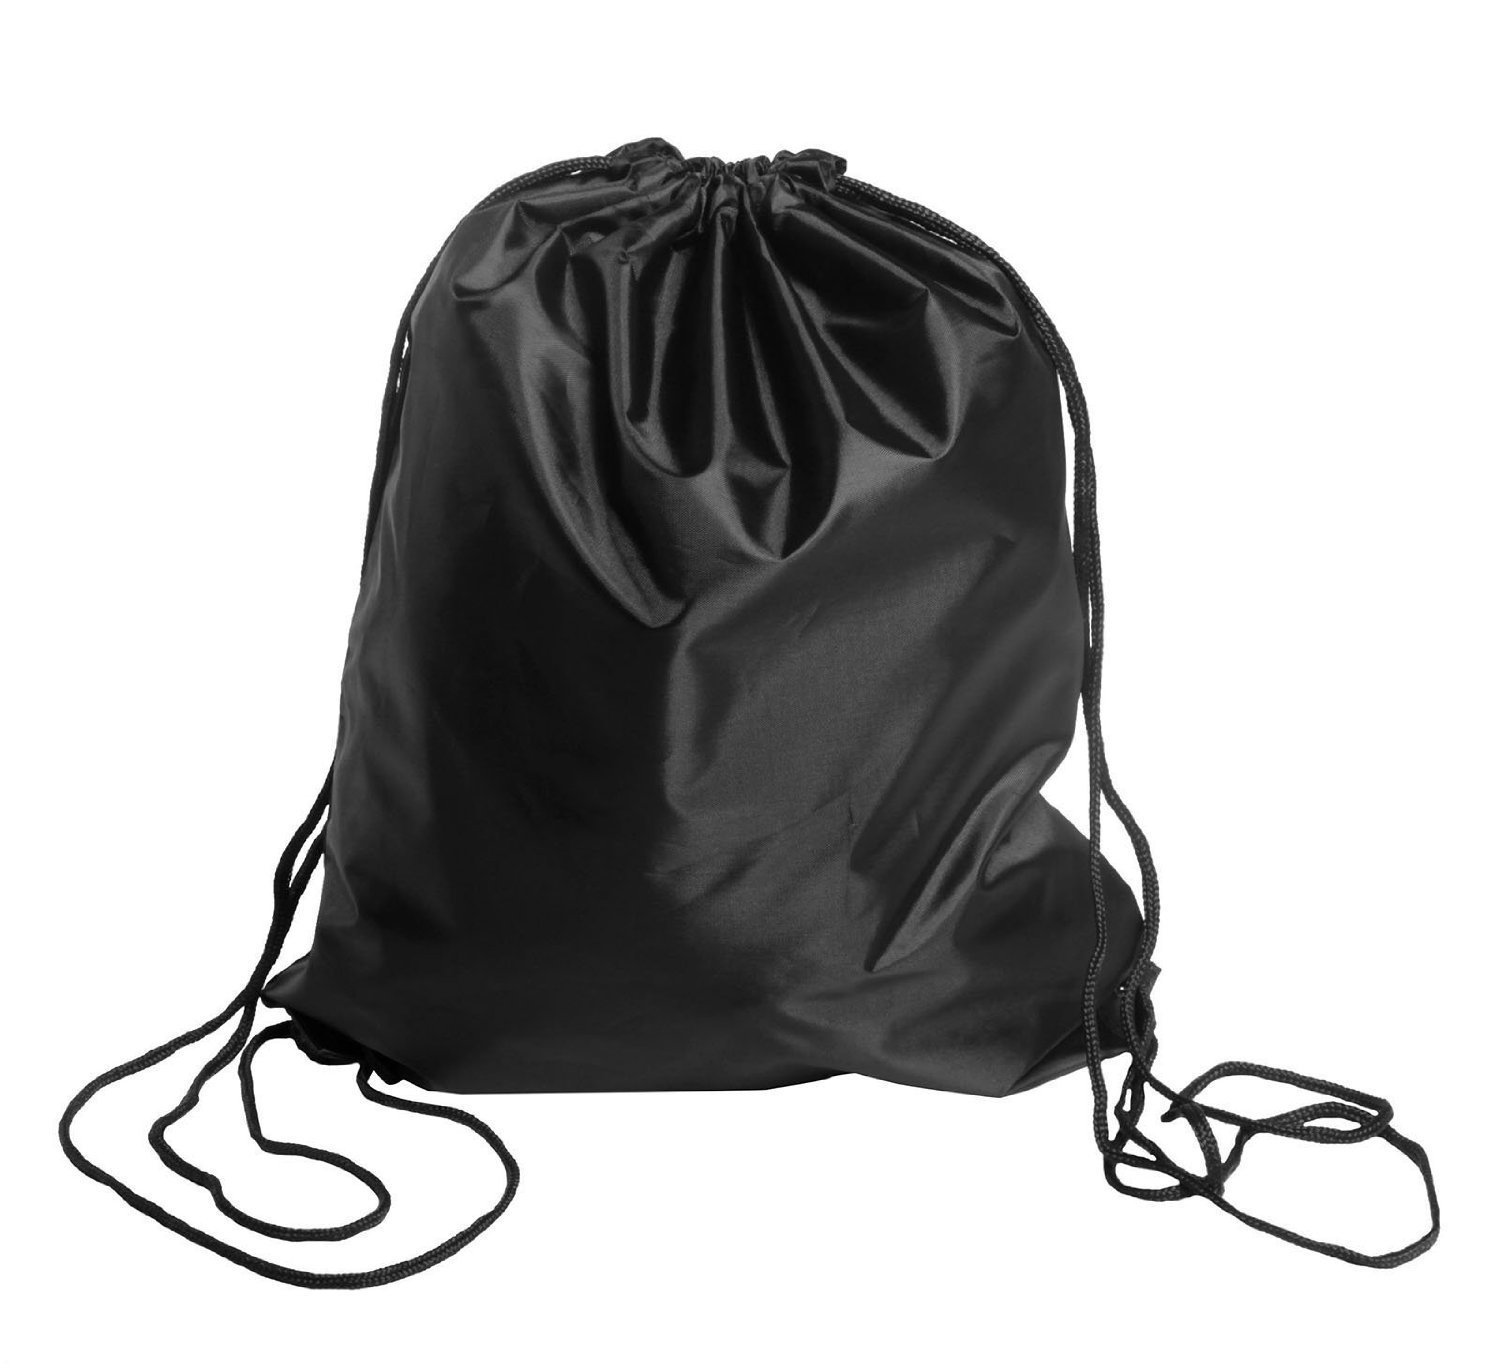 BINGONE Drawstring Bag Folding Backpack Storage Black